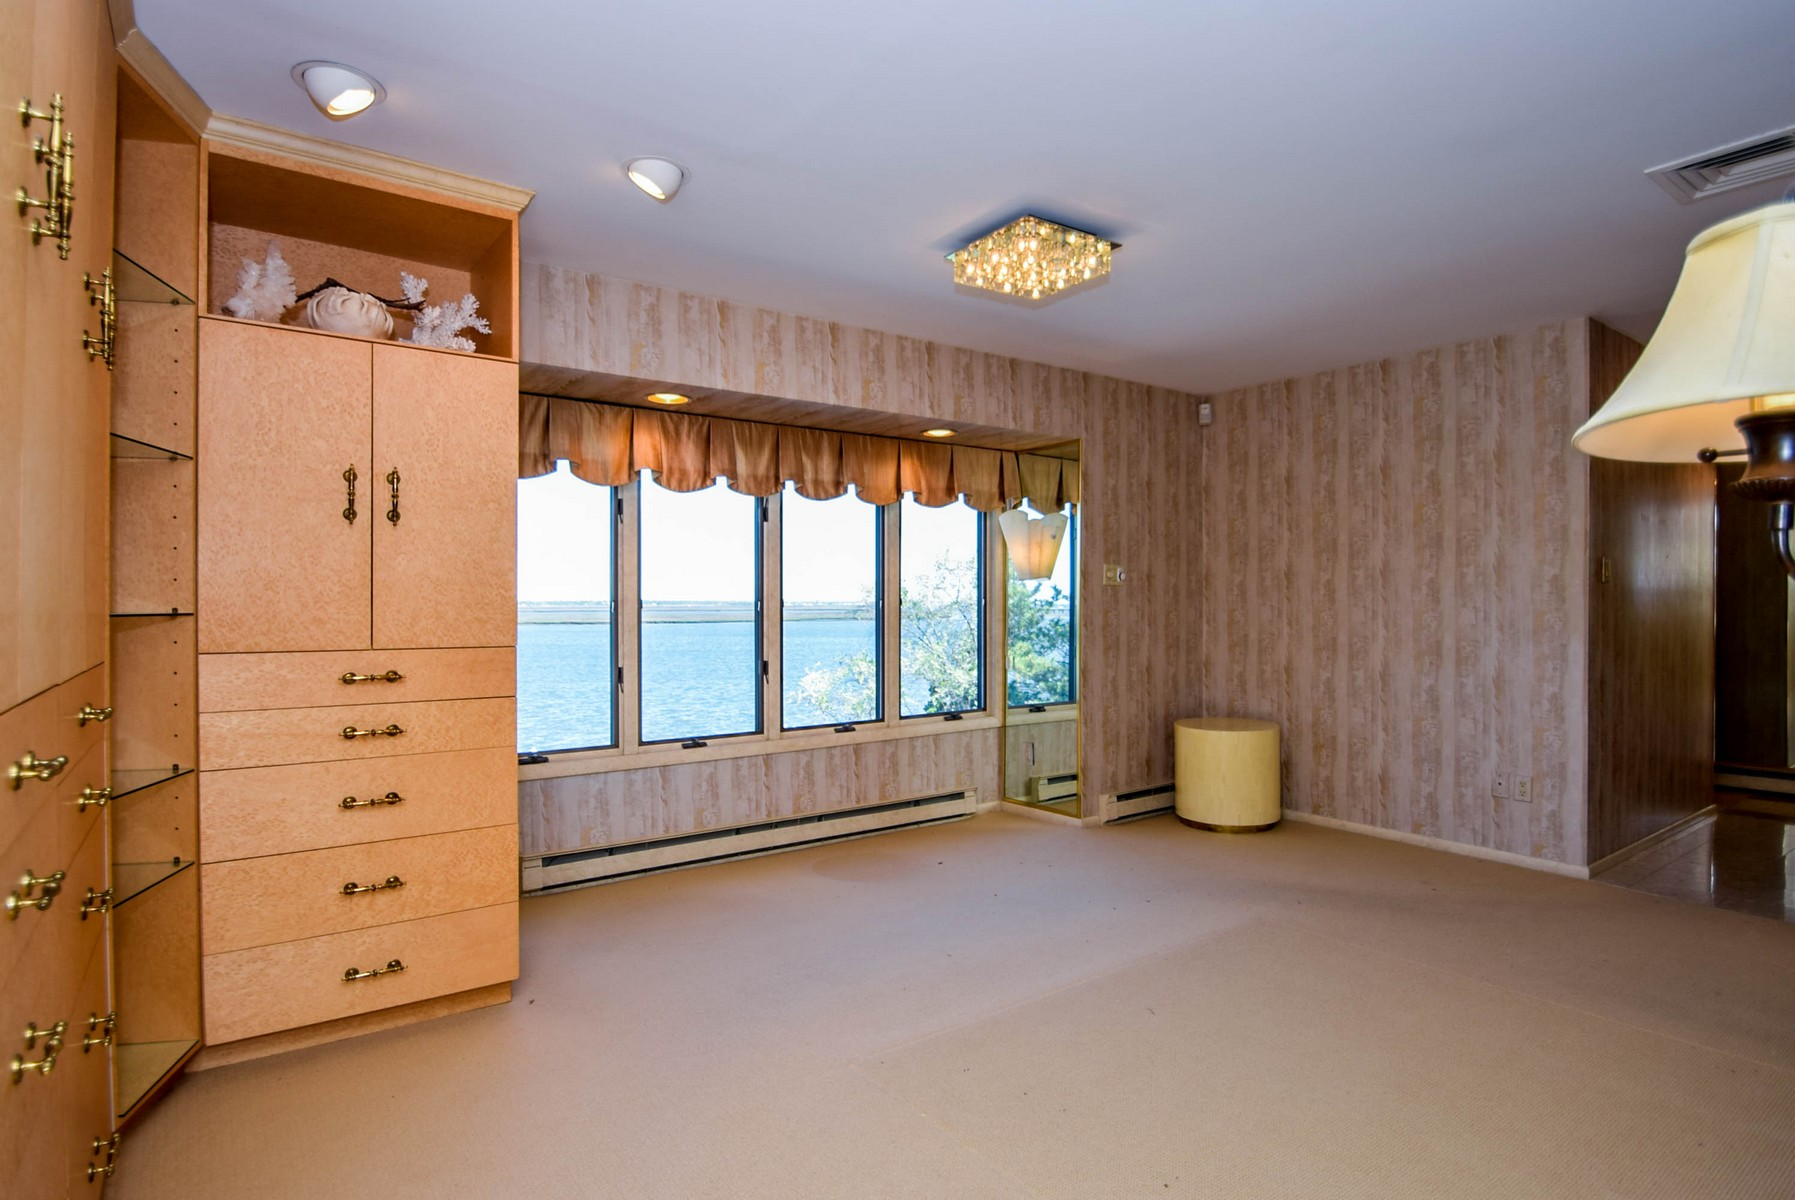 Additional photo for property listing at 8009 Bayshore Drive  Margate, New Jersey 08402 United States